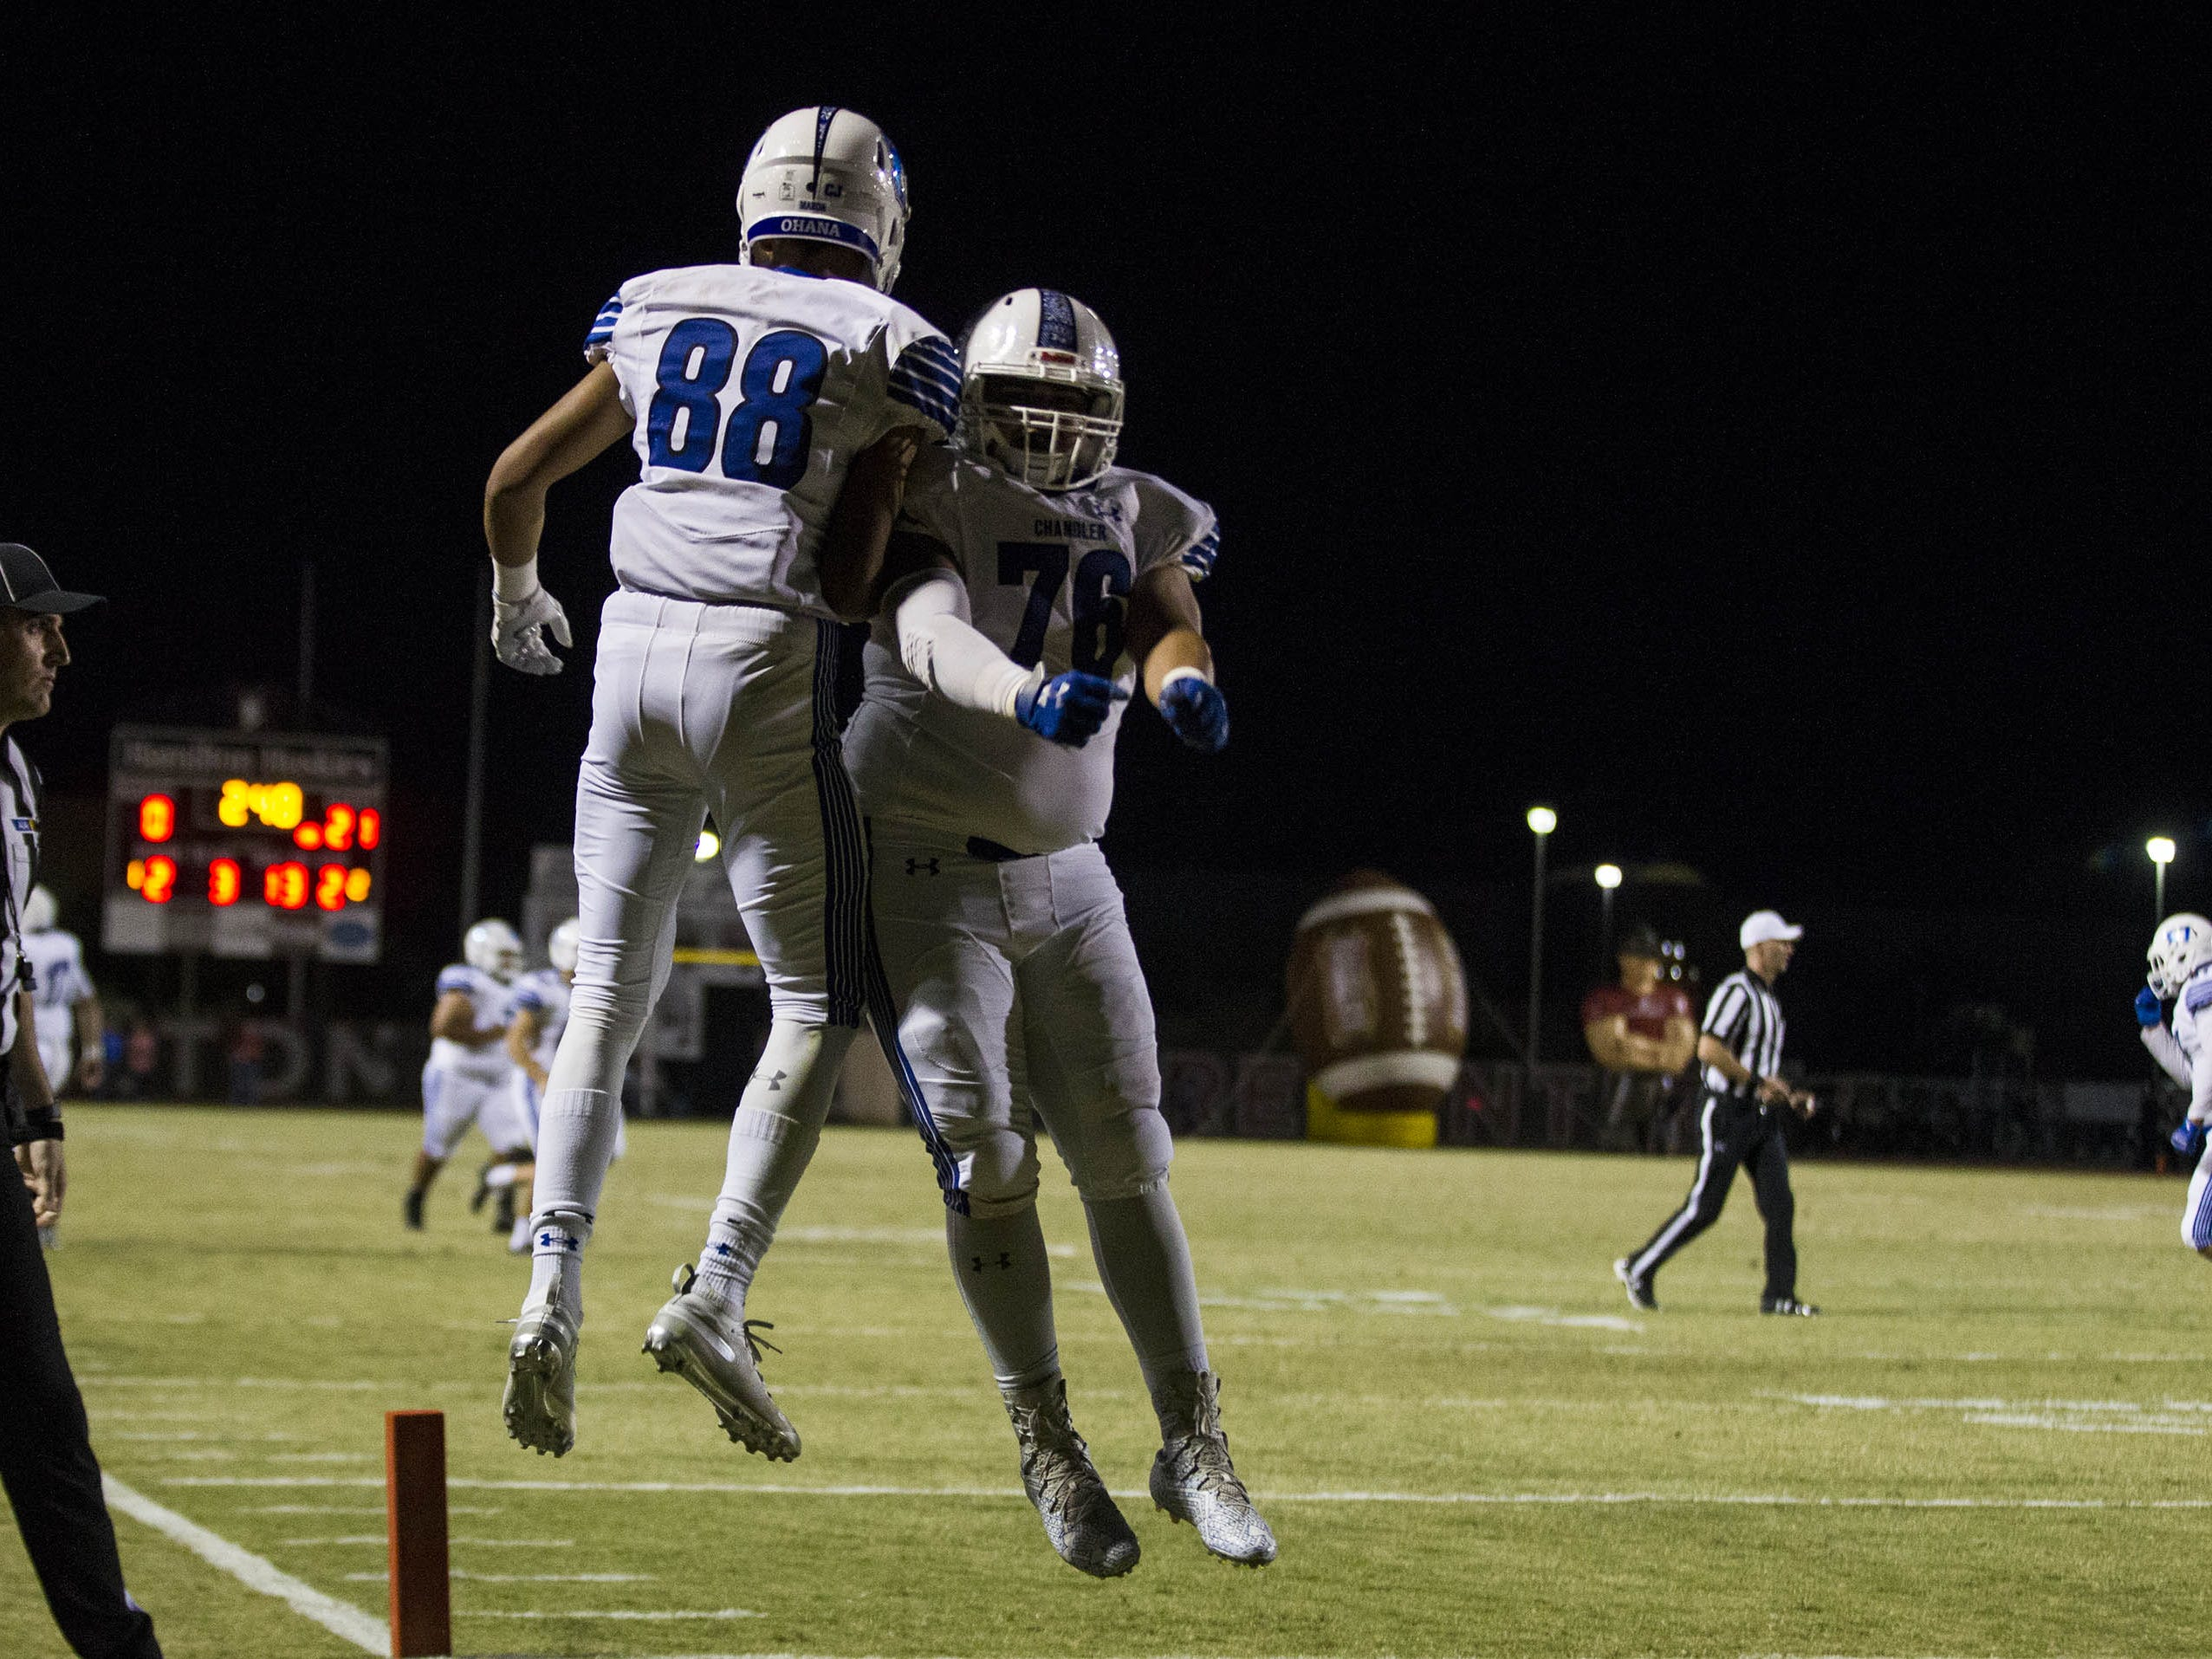 Chandler's Daseau Puffer celebrates his touchdown with his lineman Dylan Collier during their game with Hamilton in Chandler, Friday, Oct. 26, 2018. #azhsfb